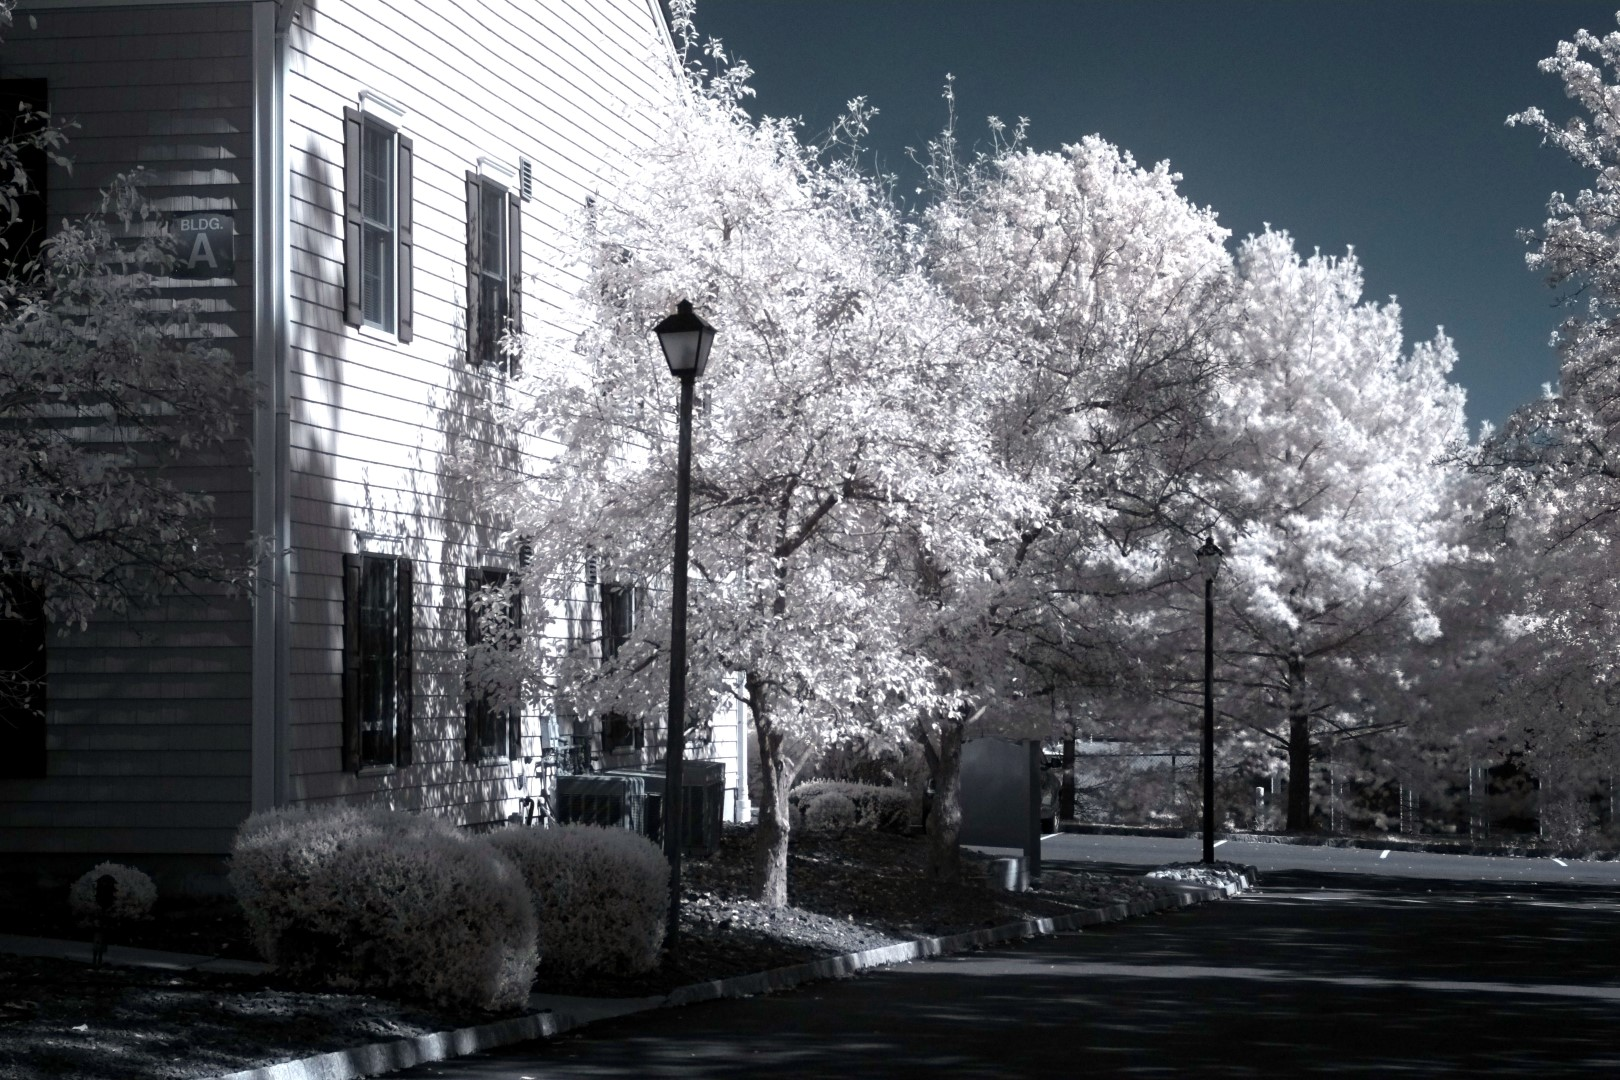 Fujifilm infrared conversion